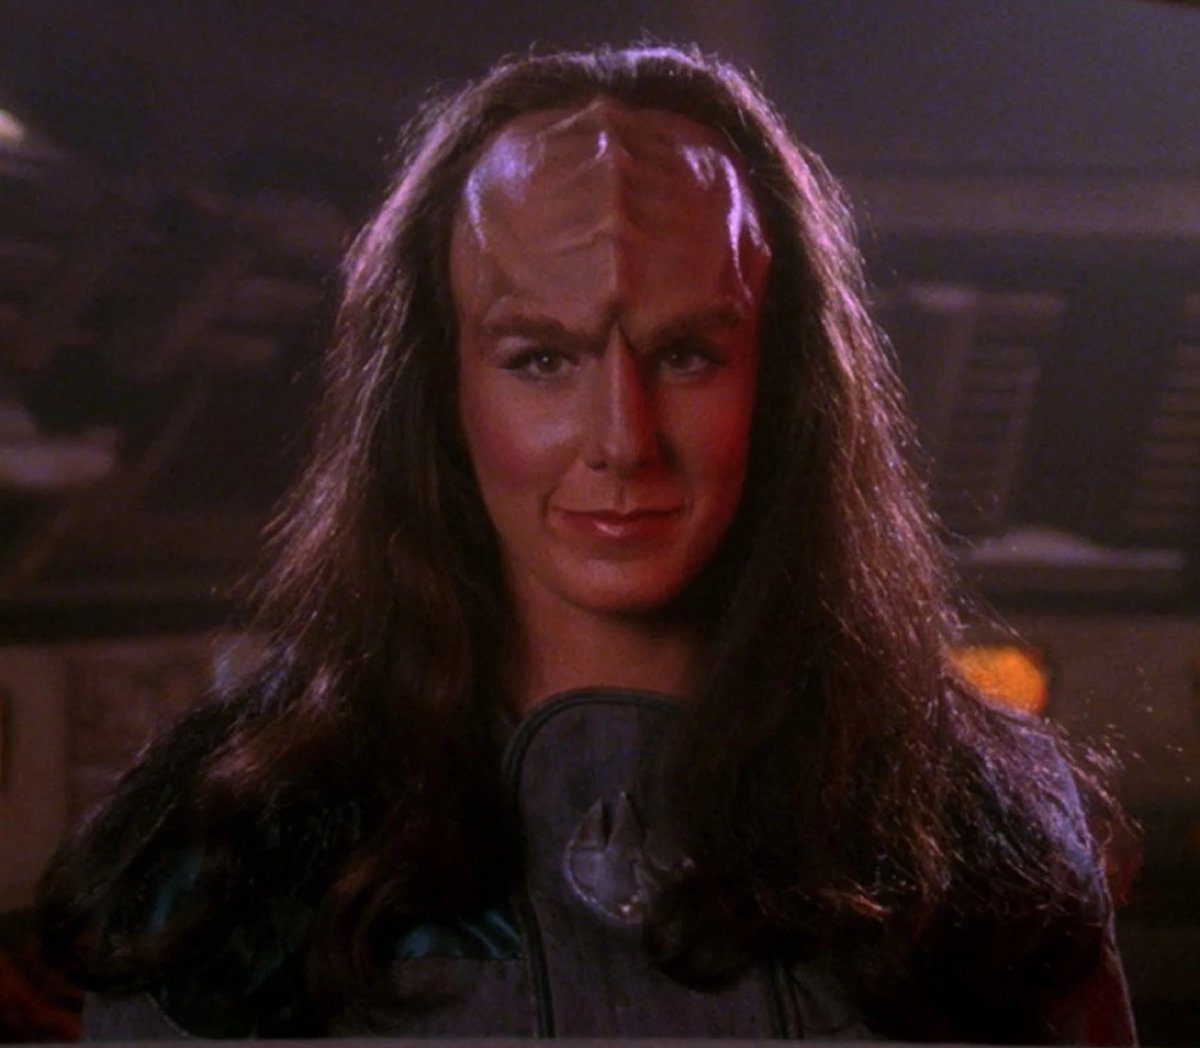 :gasp:  is this.....a Klingon space bitch preliminary findings suggest YES  #trektweets <br>http://pic.twitter.com/QPb5YoEdTI